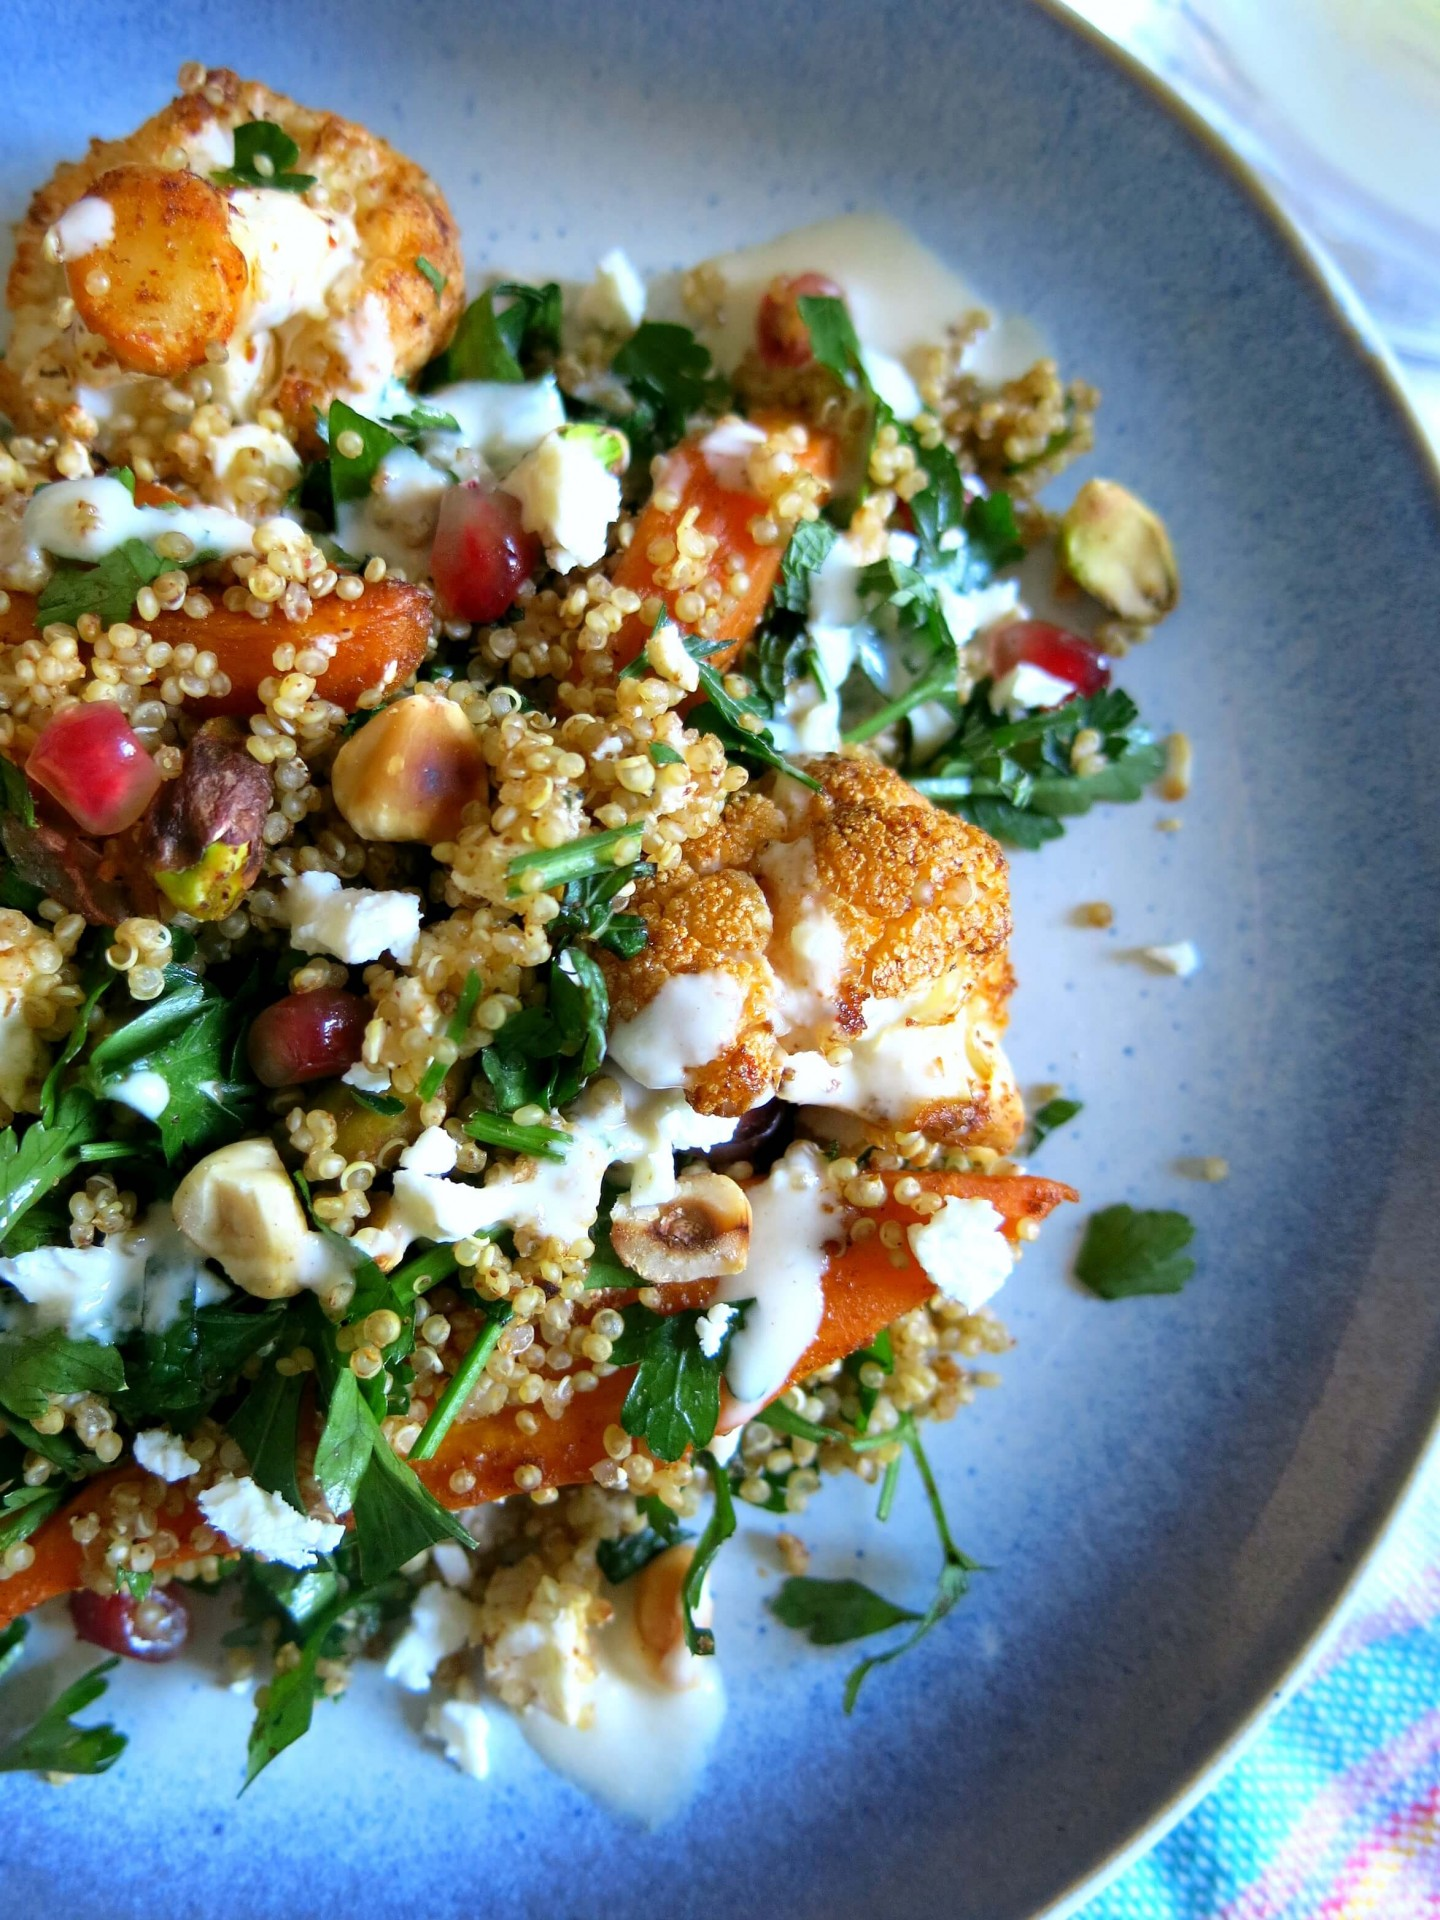 Spiced cauliflower and carrot salad recipe with a super easy tahini dressing!